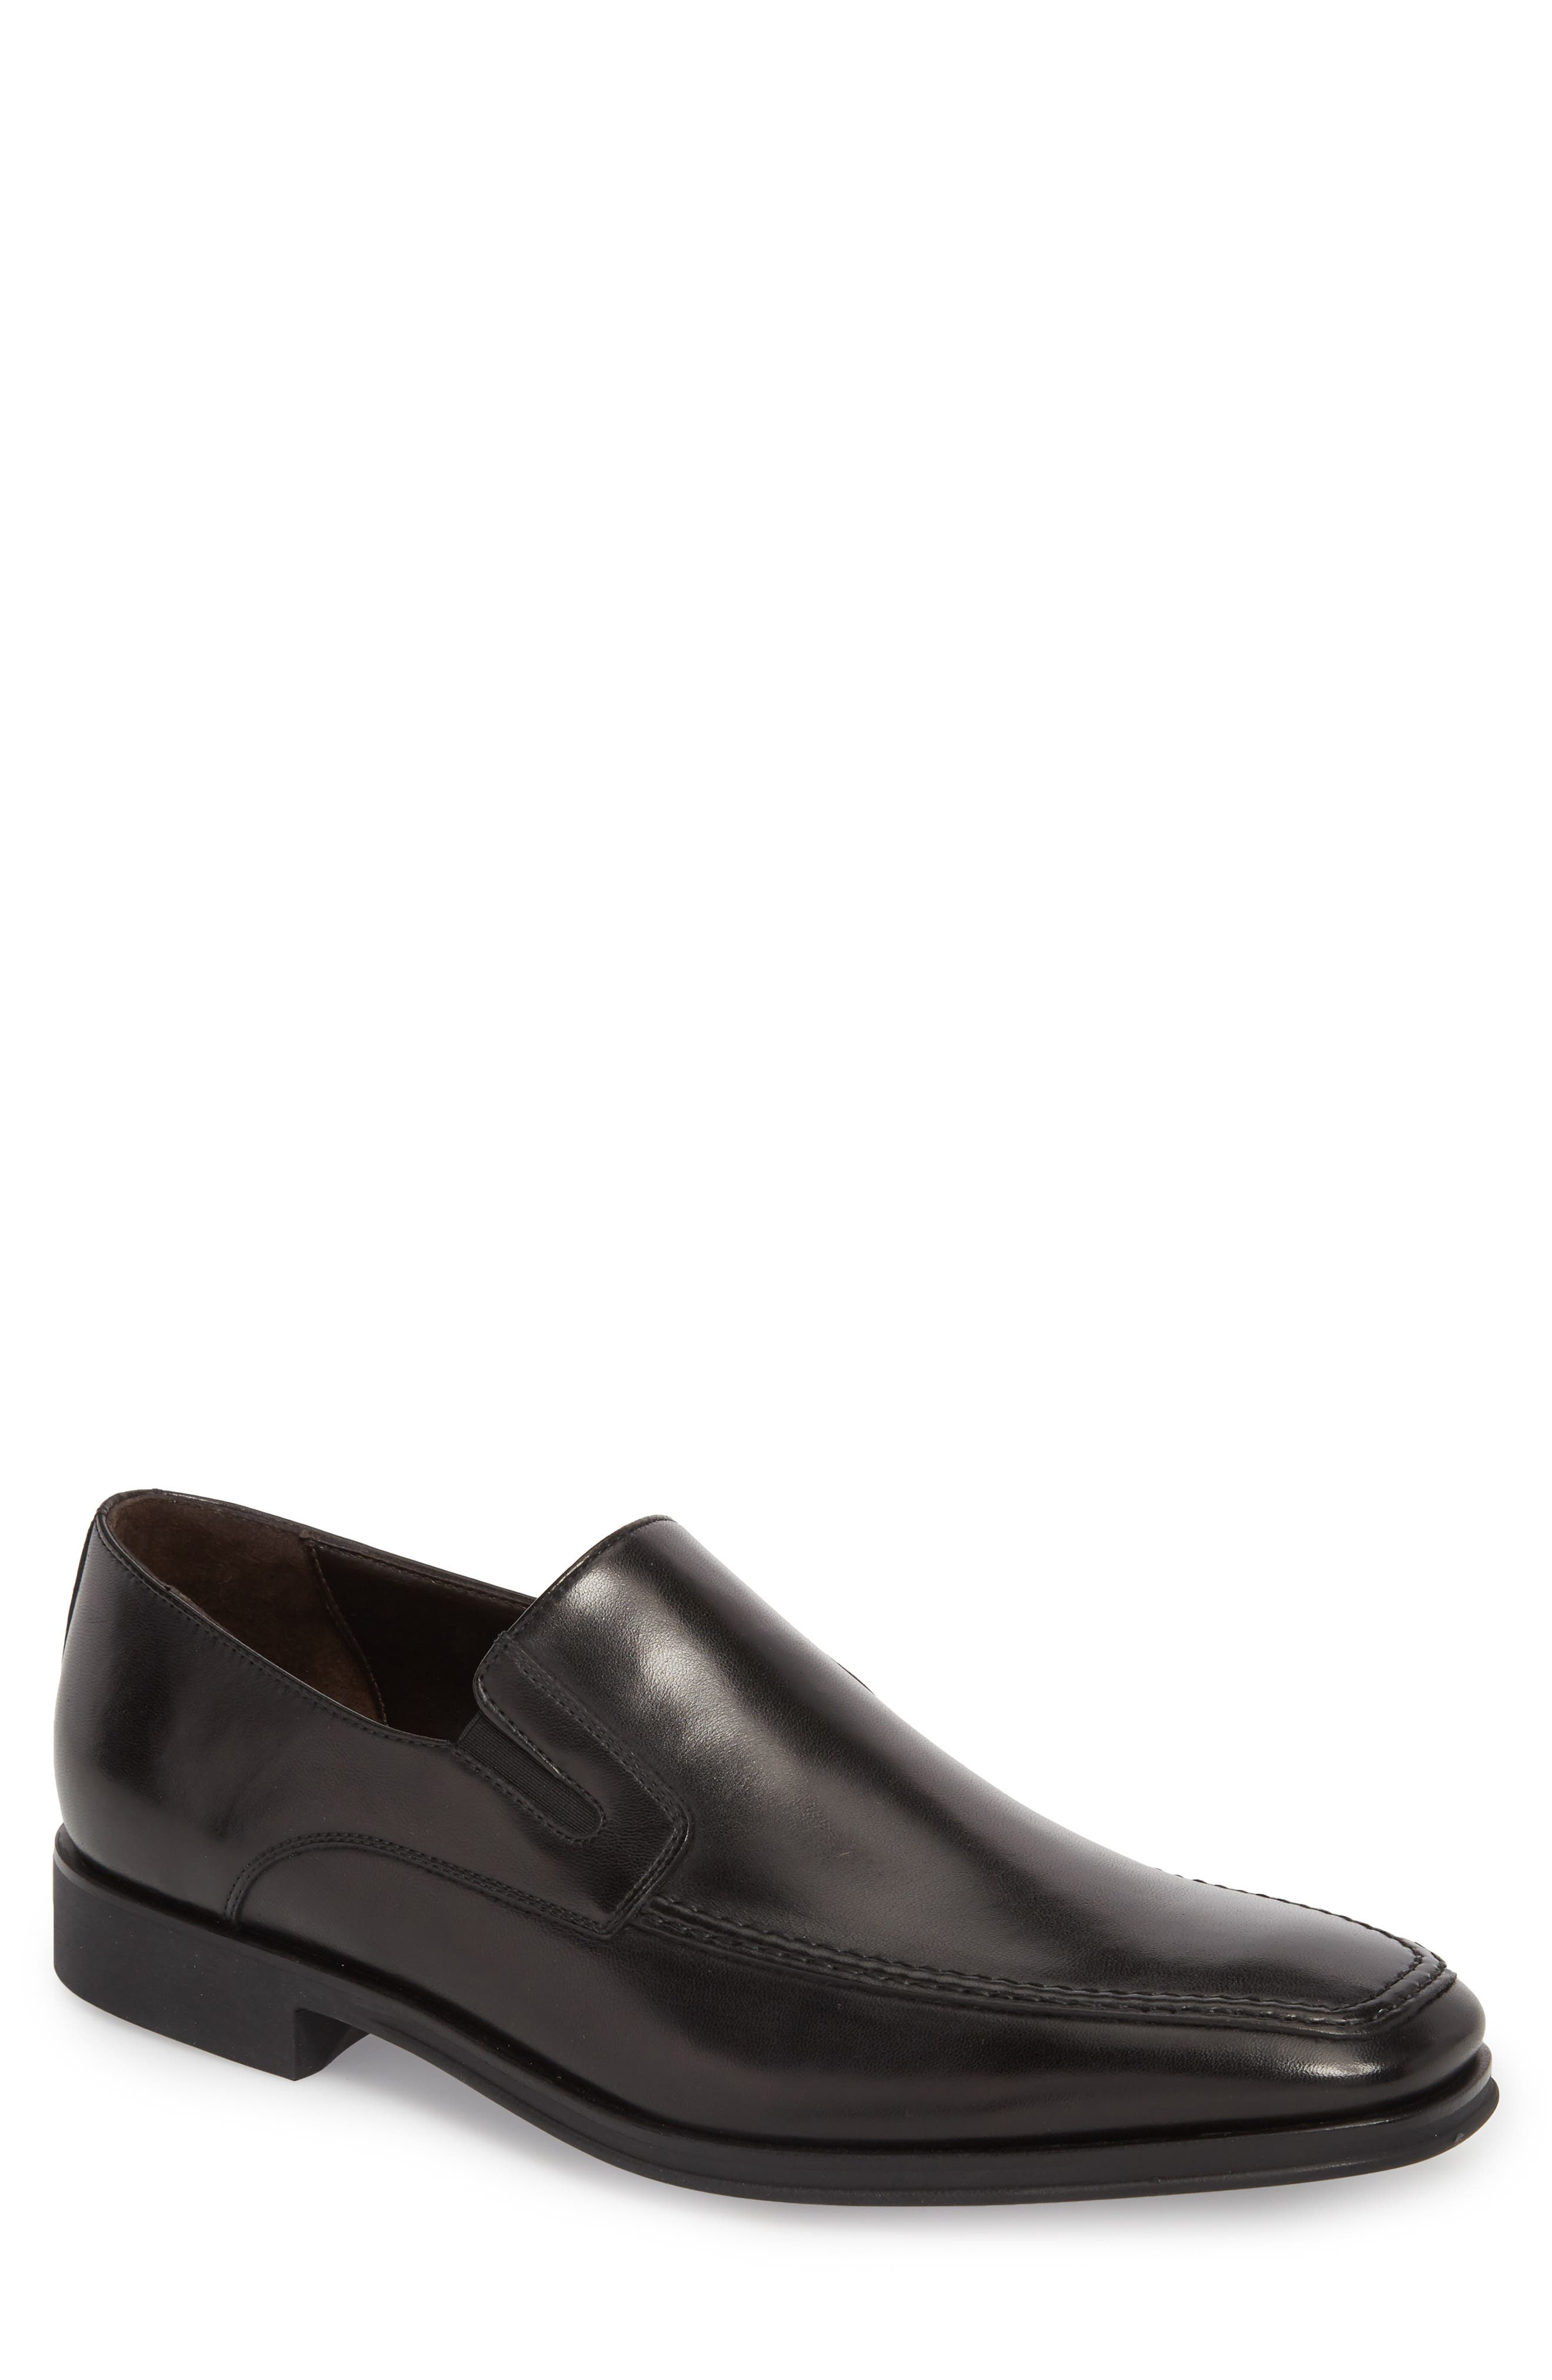 MONTE ROSSO Lucca Nappa Leather Loafer, Main, color, BLACK